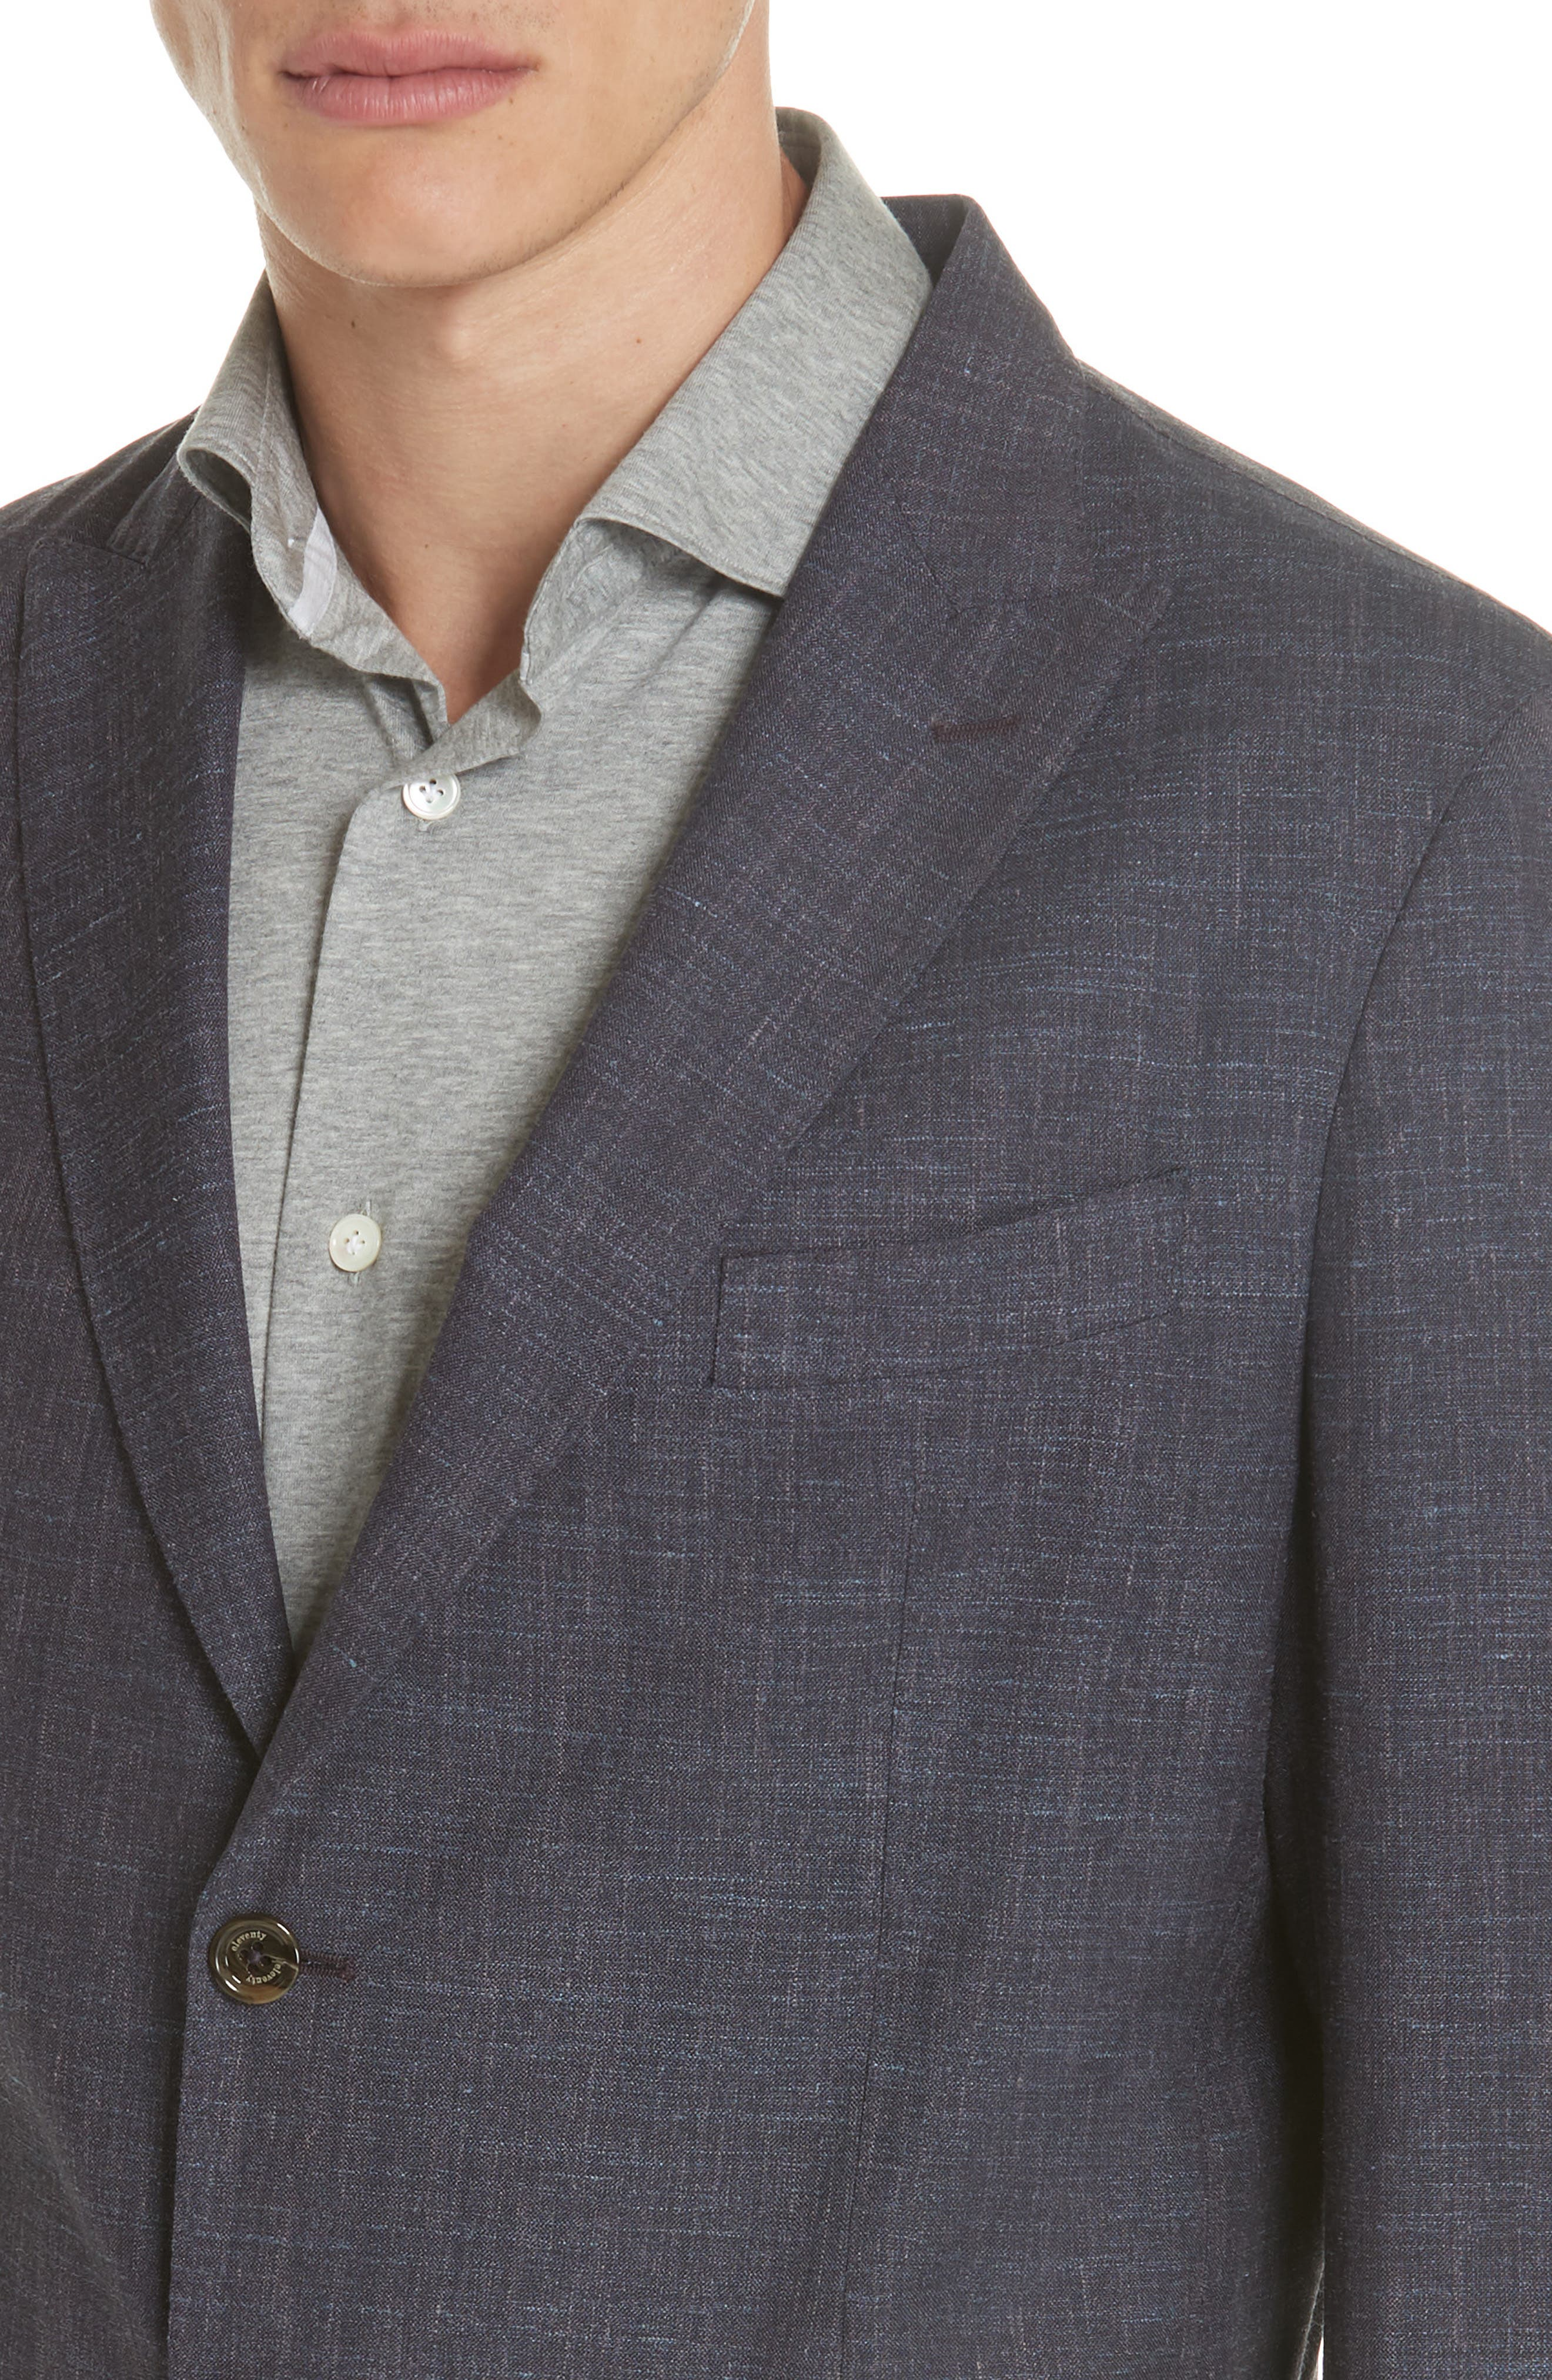 Trim Fit Wool Blend Blazer,                             Alternate thumbnail 4, color,                             Ink